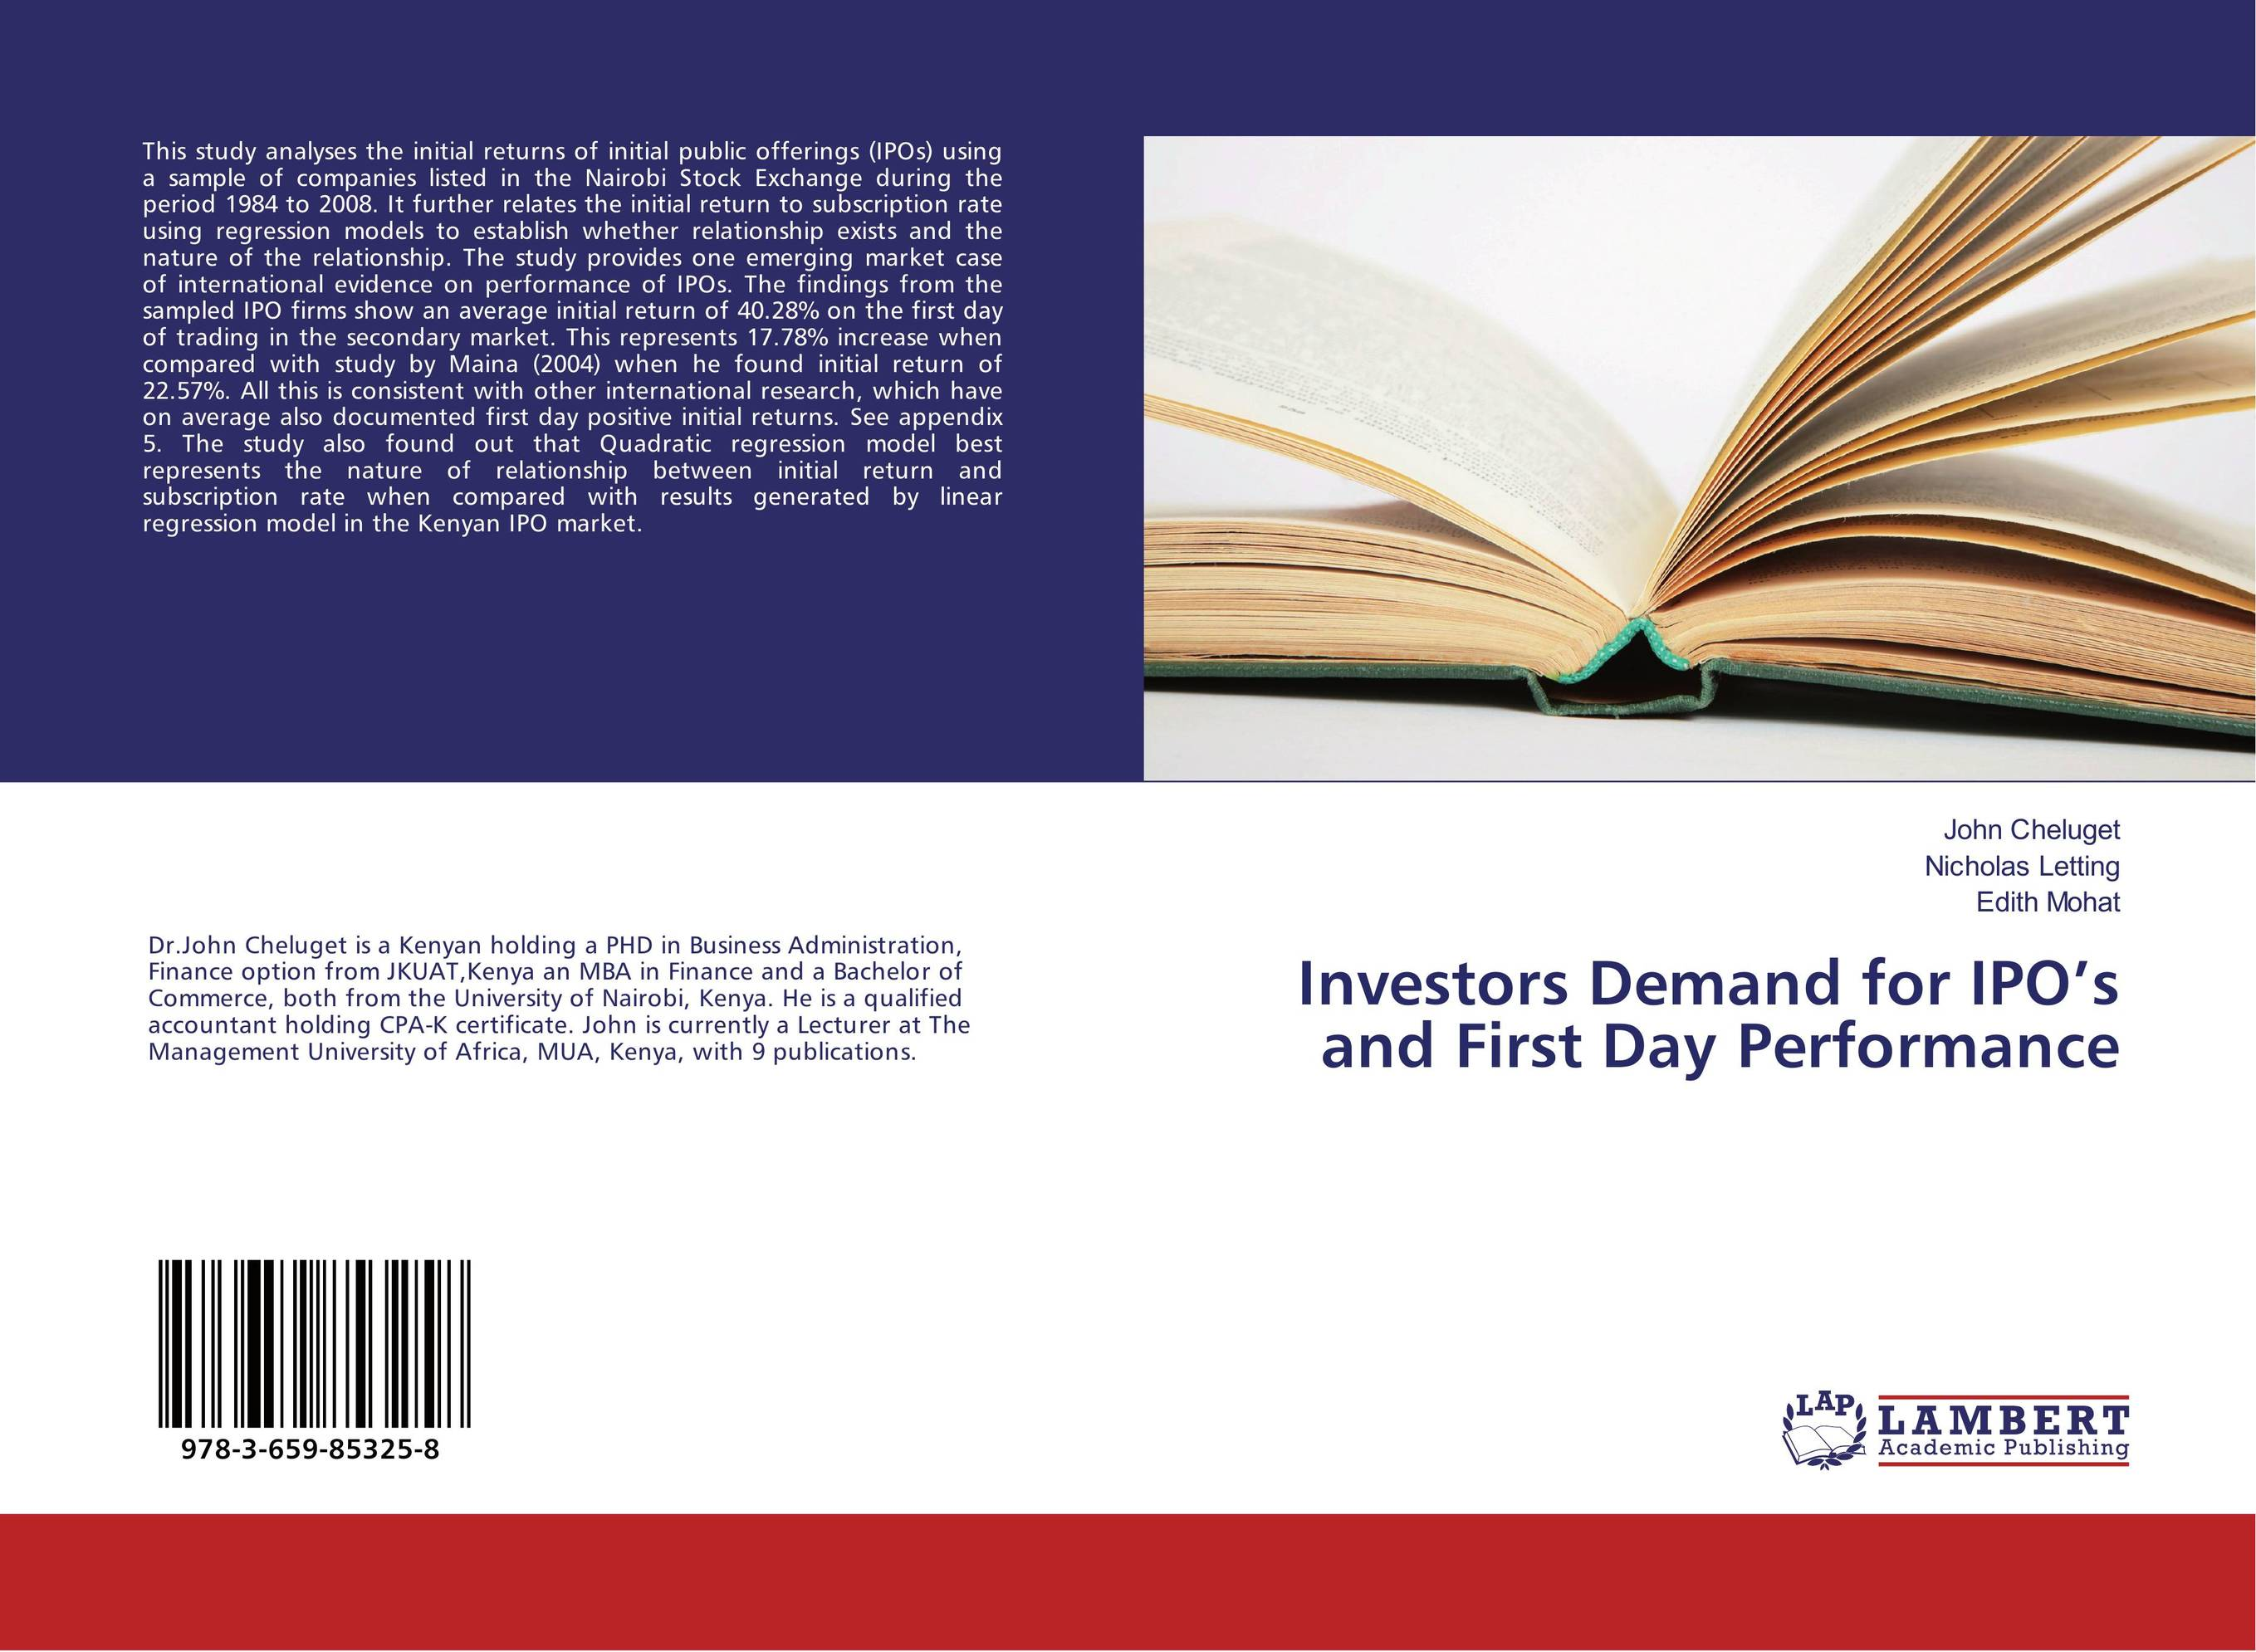 Investors Demand for IPO's and First Day Performance market day